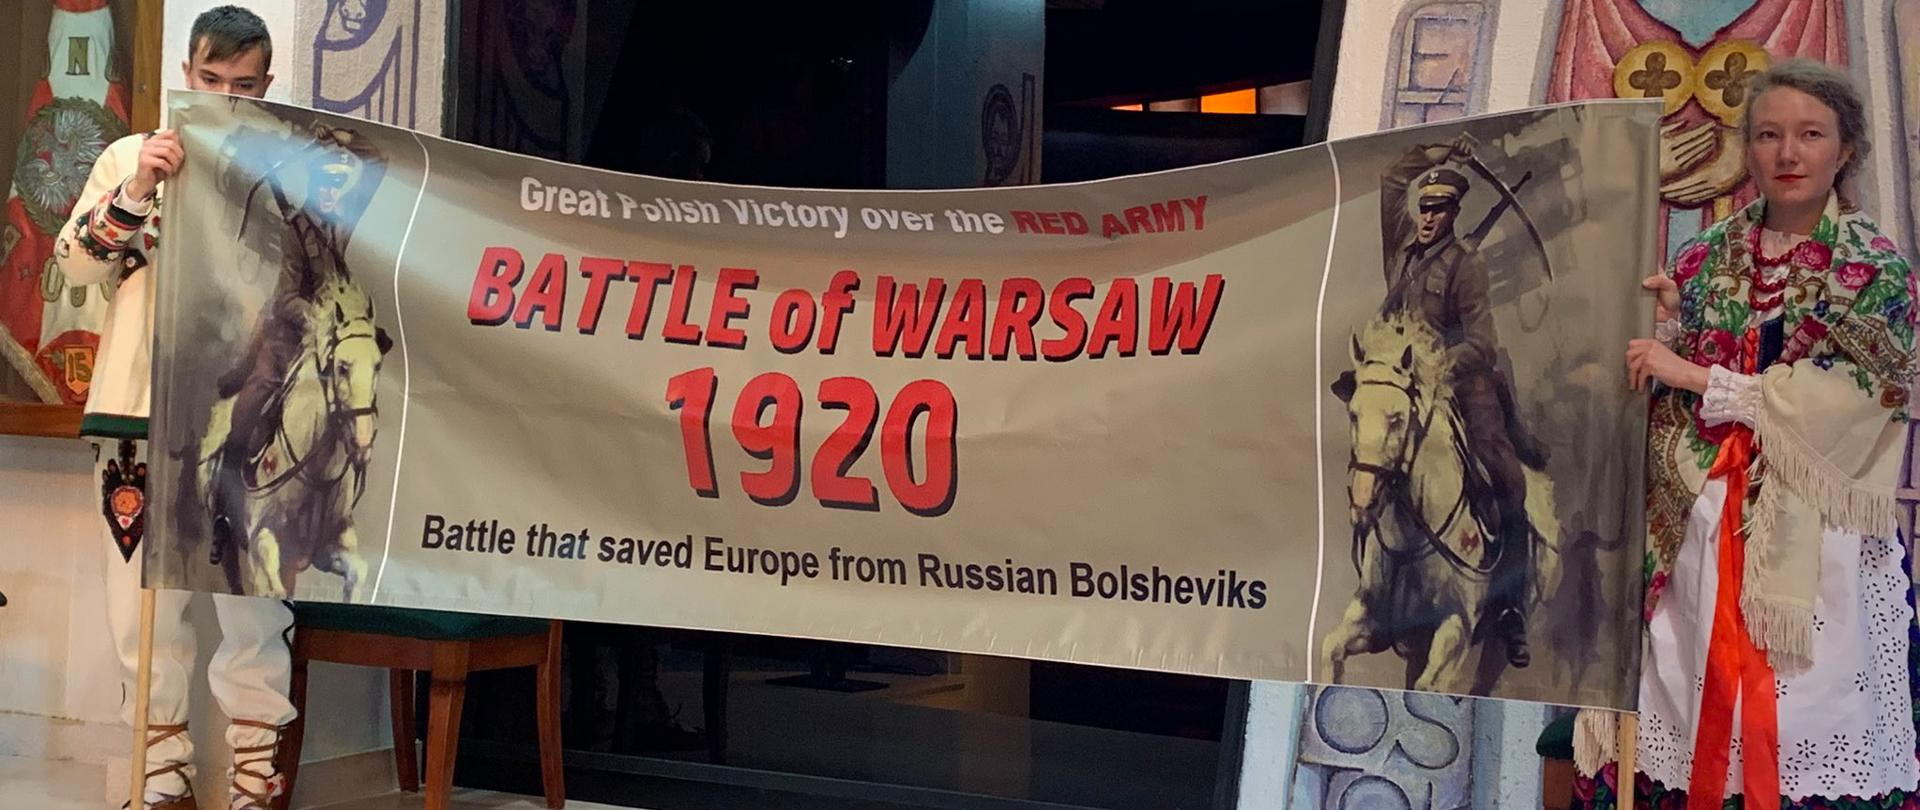 Celebration of the 100th anniversary of the Battle of Warsaw in Australia